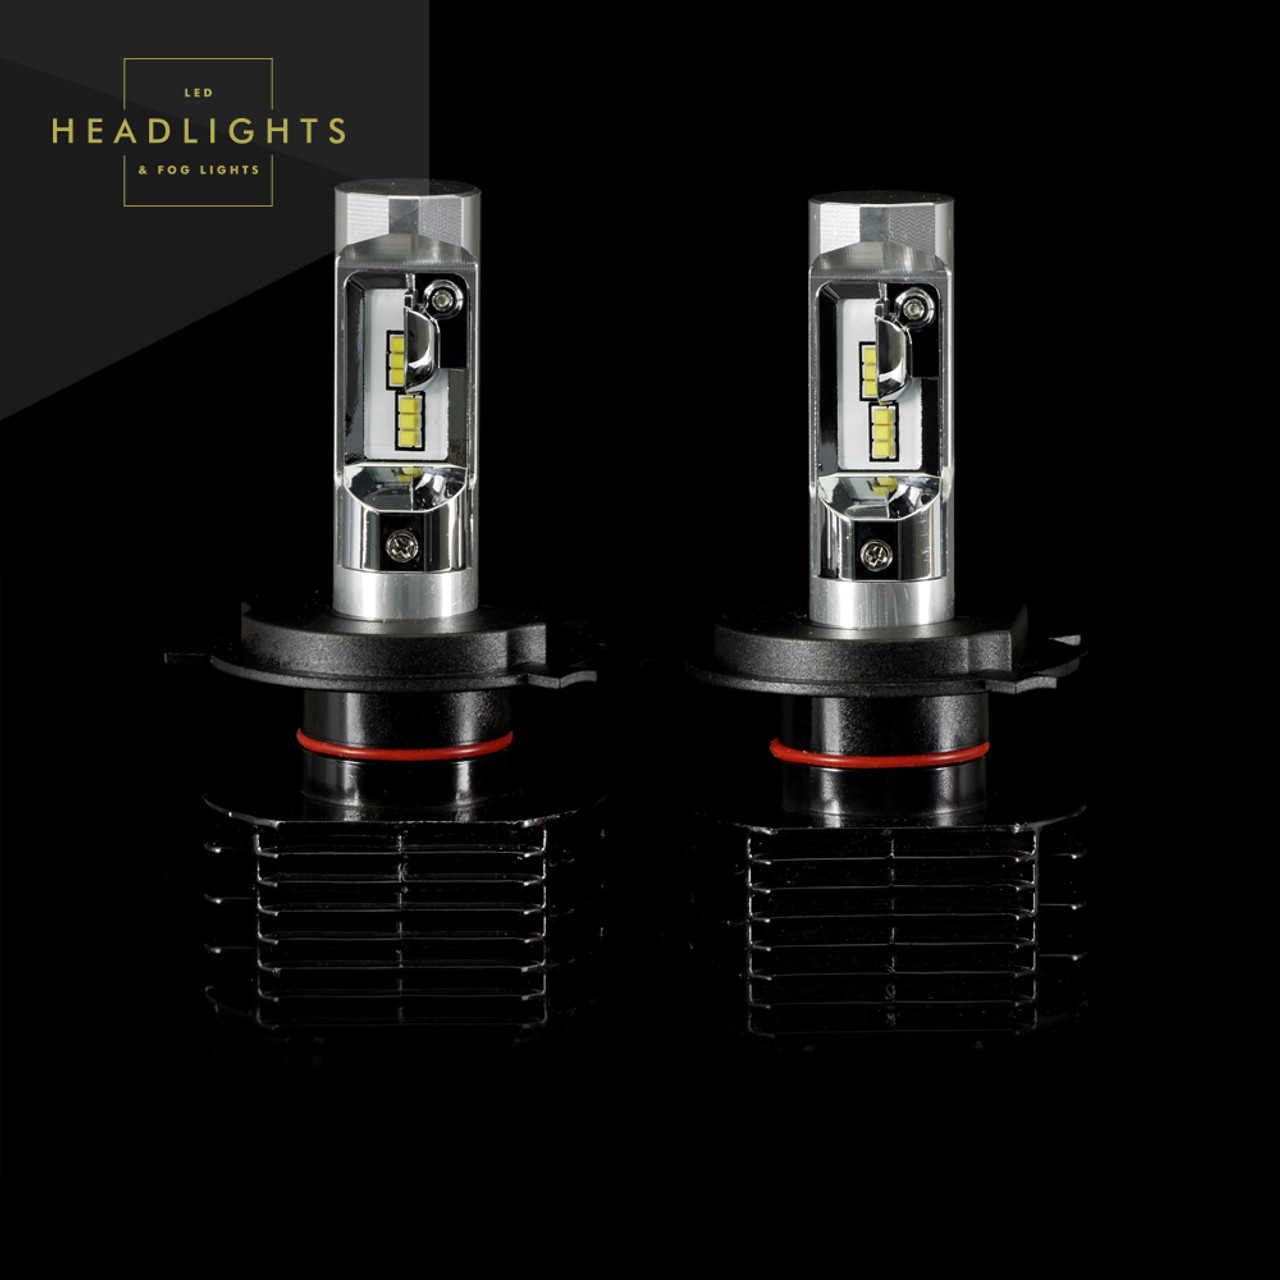 medium resolution of gtr lighting ultra series led headlight bulbs h4 9003 3rd generation